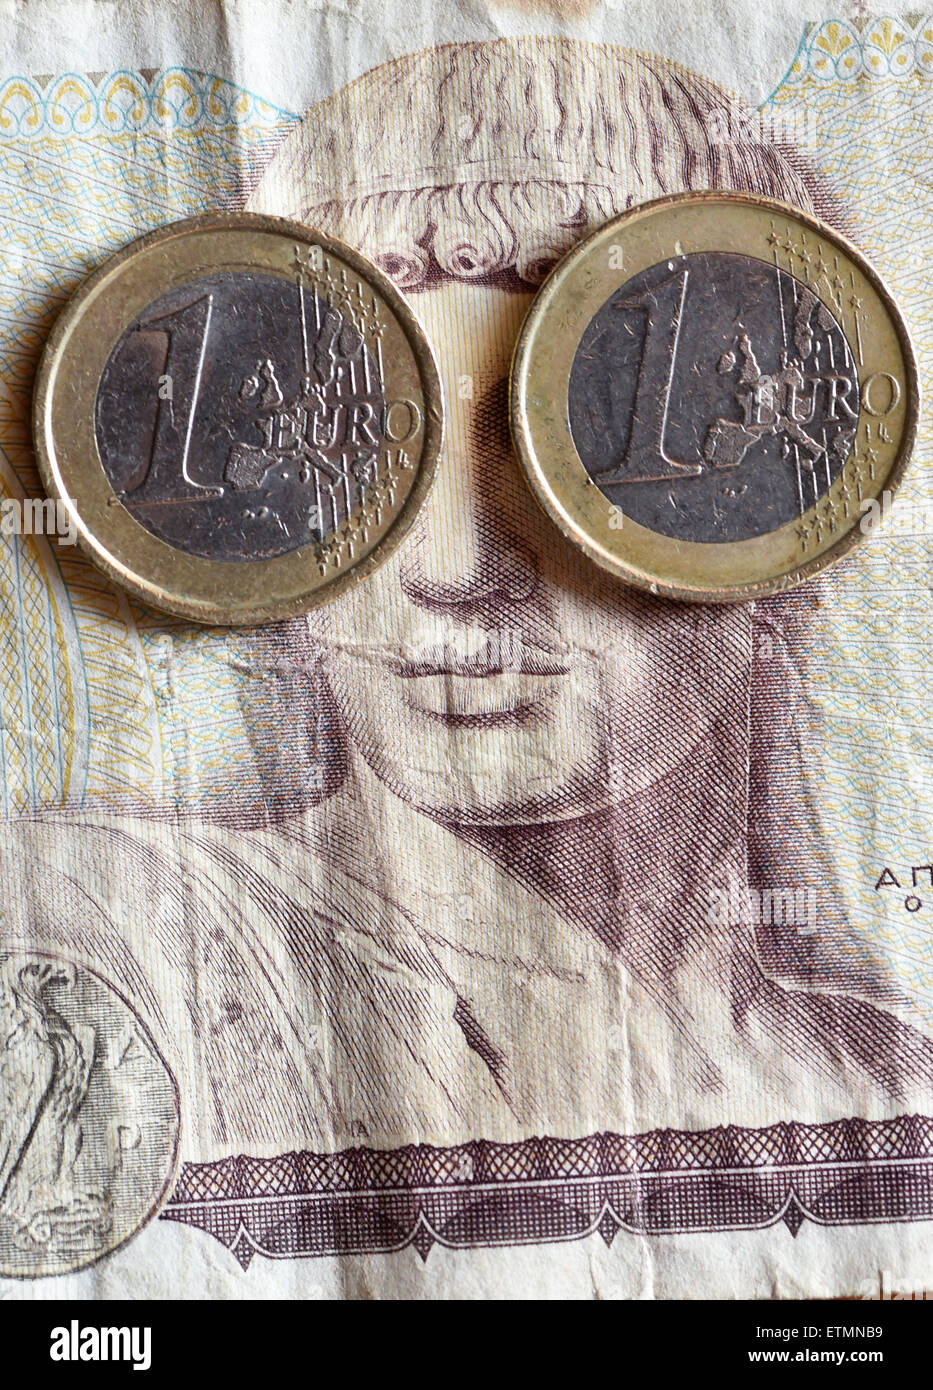 Berlin, Germany. 14th June, 2015. ILLUSTRATION - Two one euro coins cover the eyes of Greek god Apollo on a 1000 Greek drachma bill in Berlin, Germany, 14 June 2015. Photo: Jens Kalaene/dpa/Alamy Live News Stock Photo